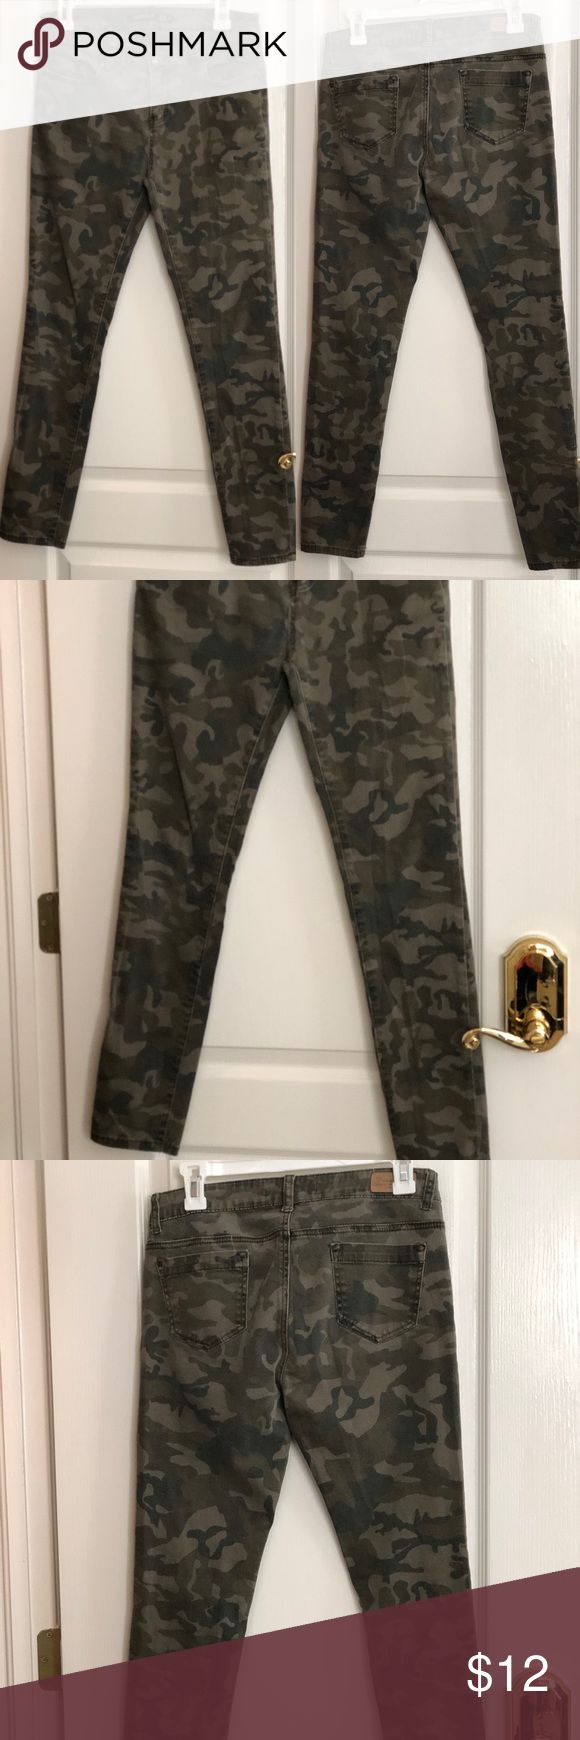 Denim Blvd Camo Skinny Pants - size 9 on tag  - 98% cotton 2% spandex  - approx 14 in waist when laid flat  - approx 9 in front rise  - approx 26.5 in inseam   In excellent condition super nice and comfy, I am selling all my pants (too bad they all doesn't fit me anymore) so I need to get new ones. Comes from a smoke and pet-free home.   - open for reasonable offers, bundle items so I can send you an offer. Thanks! Happy Poshing! Pants Skinny